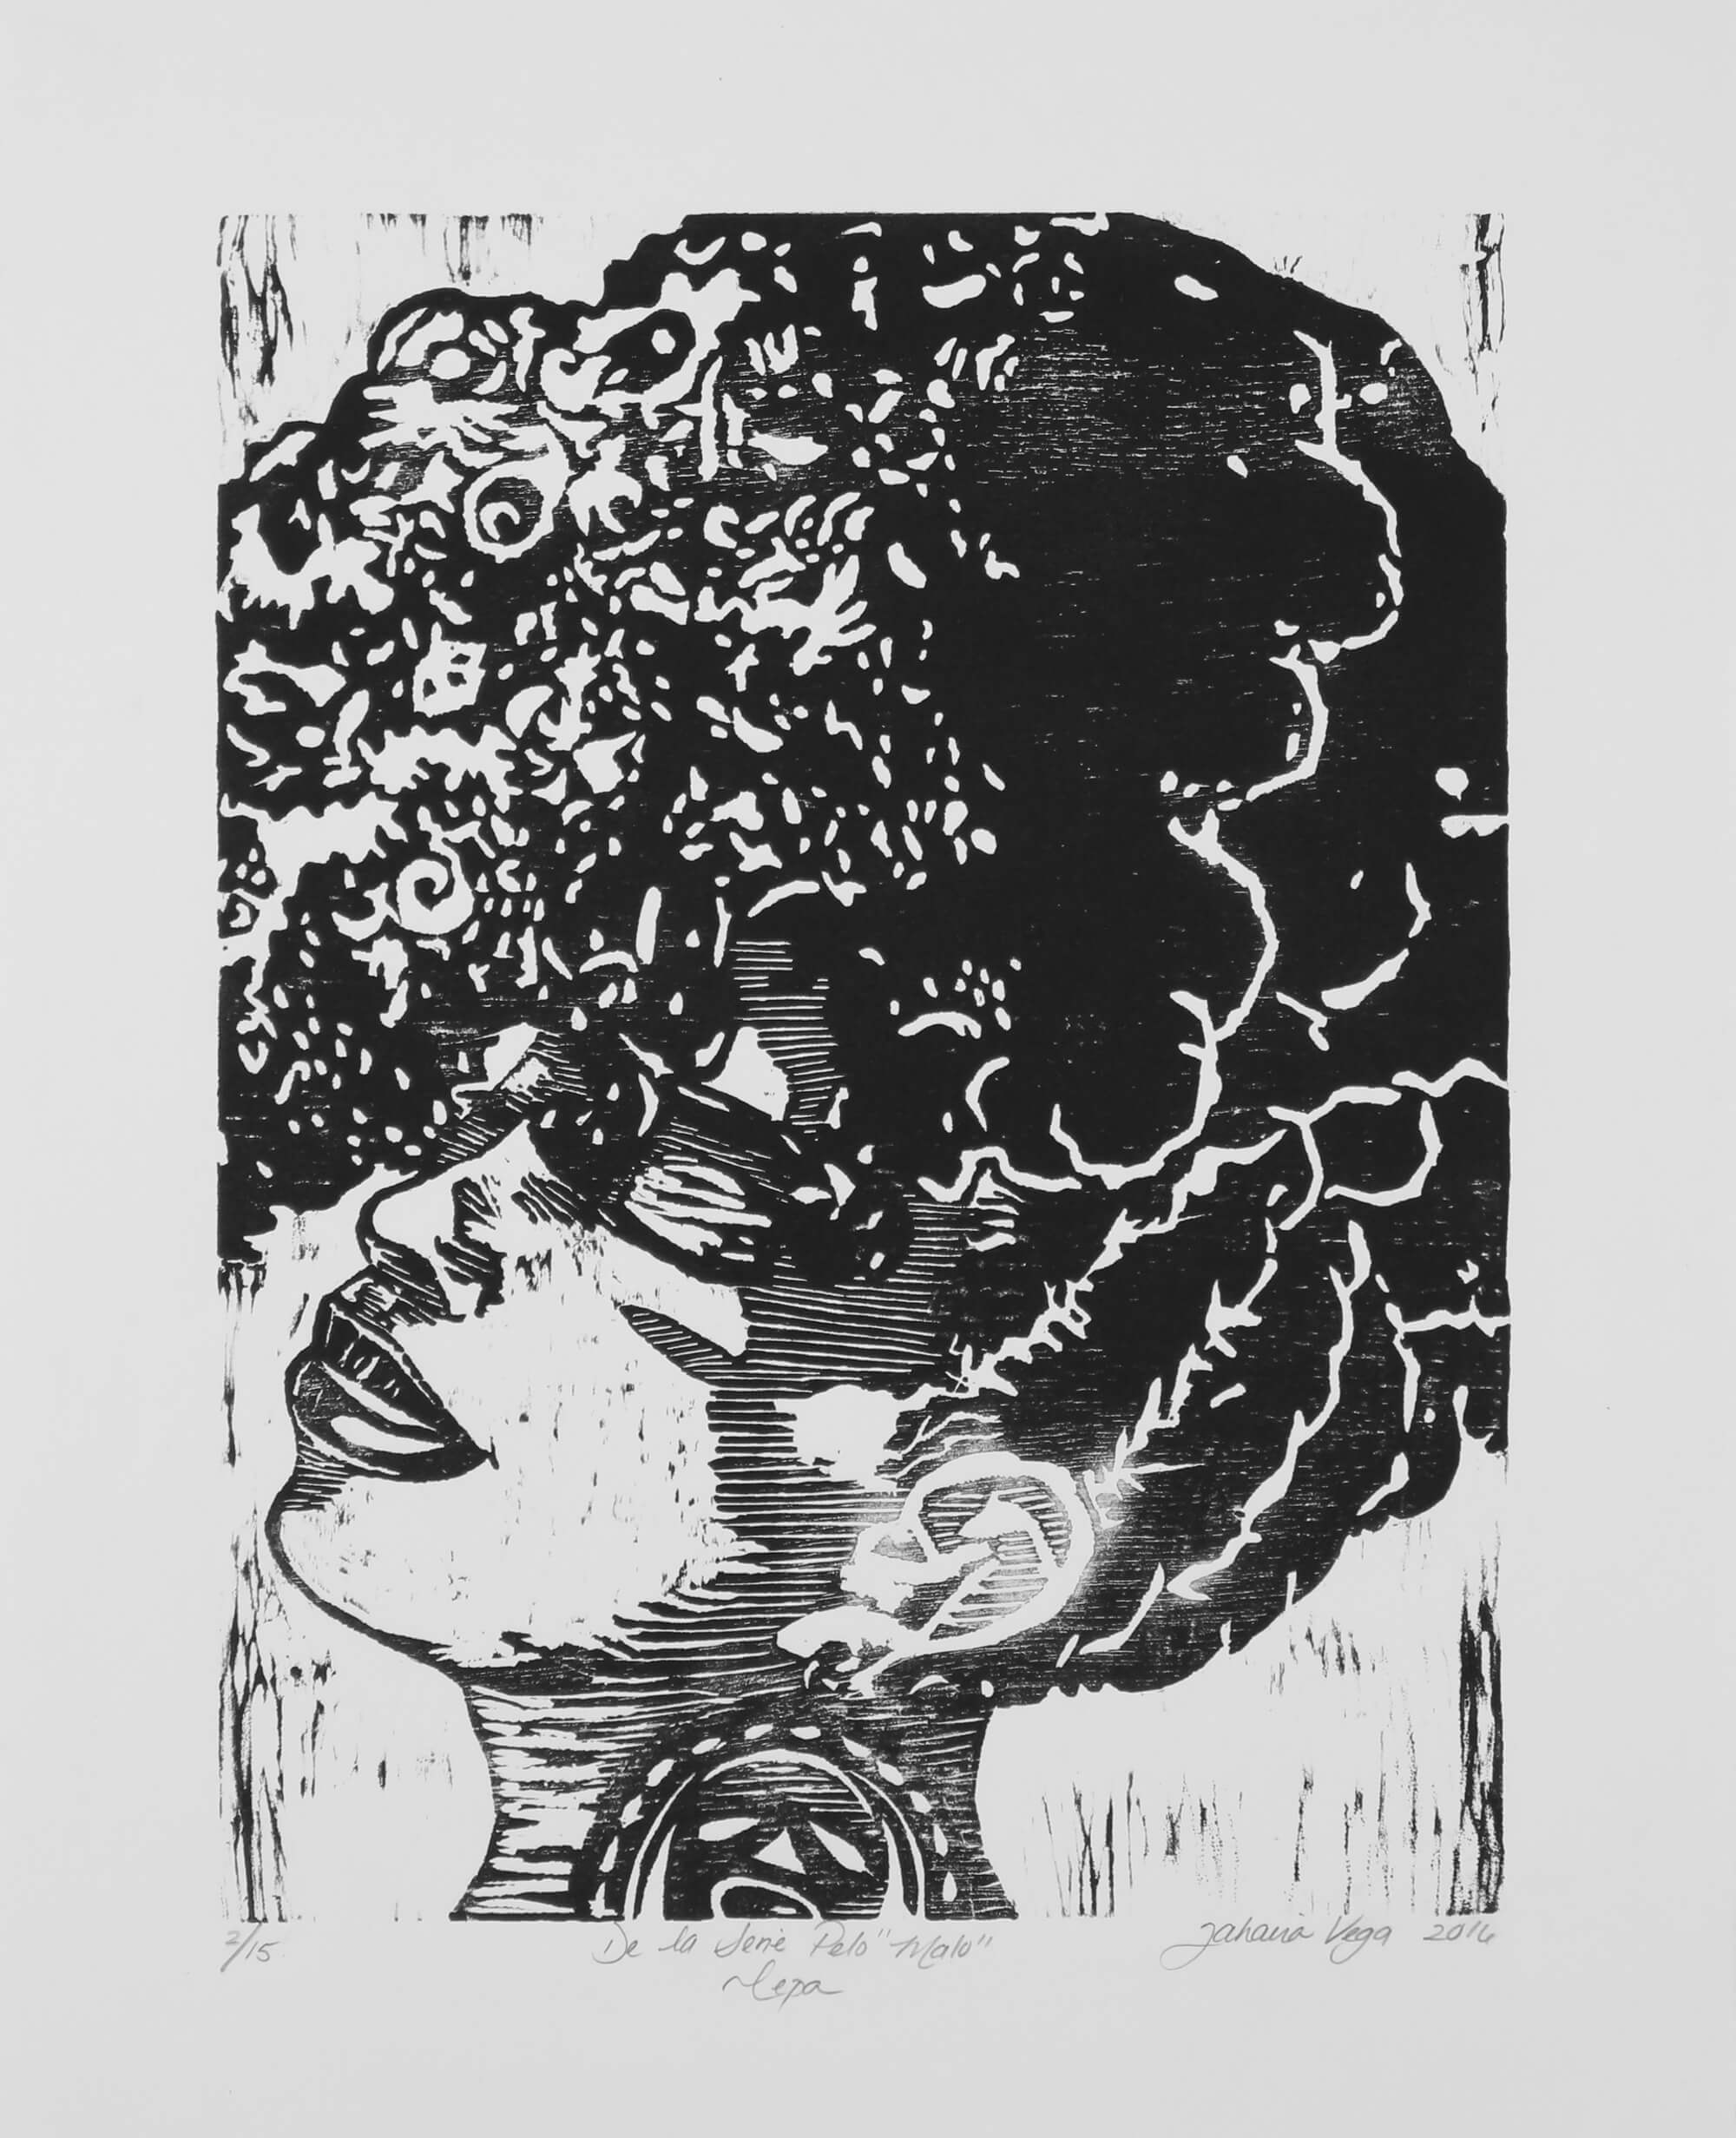 Wood cut print of side view portrait of black woman with abundant hair by Yarie Vega